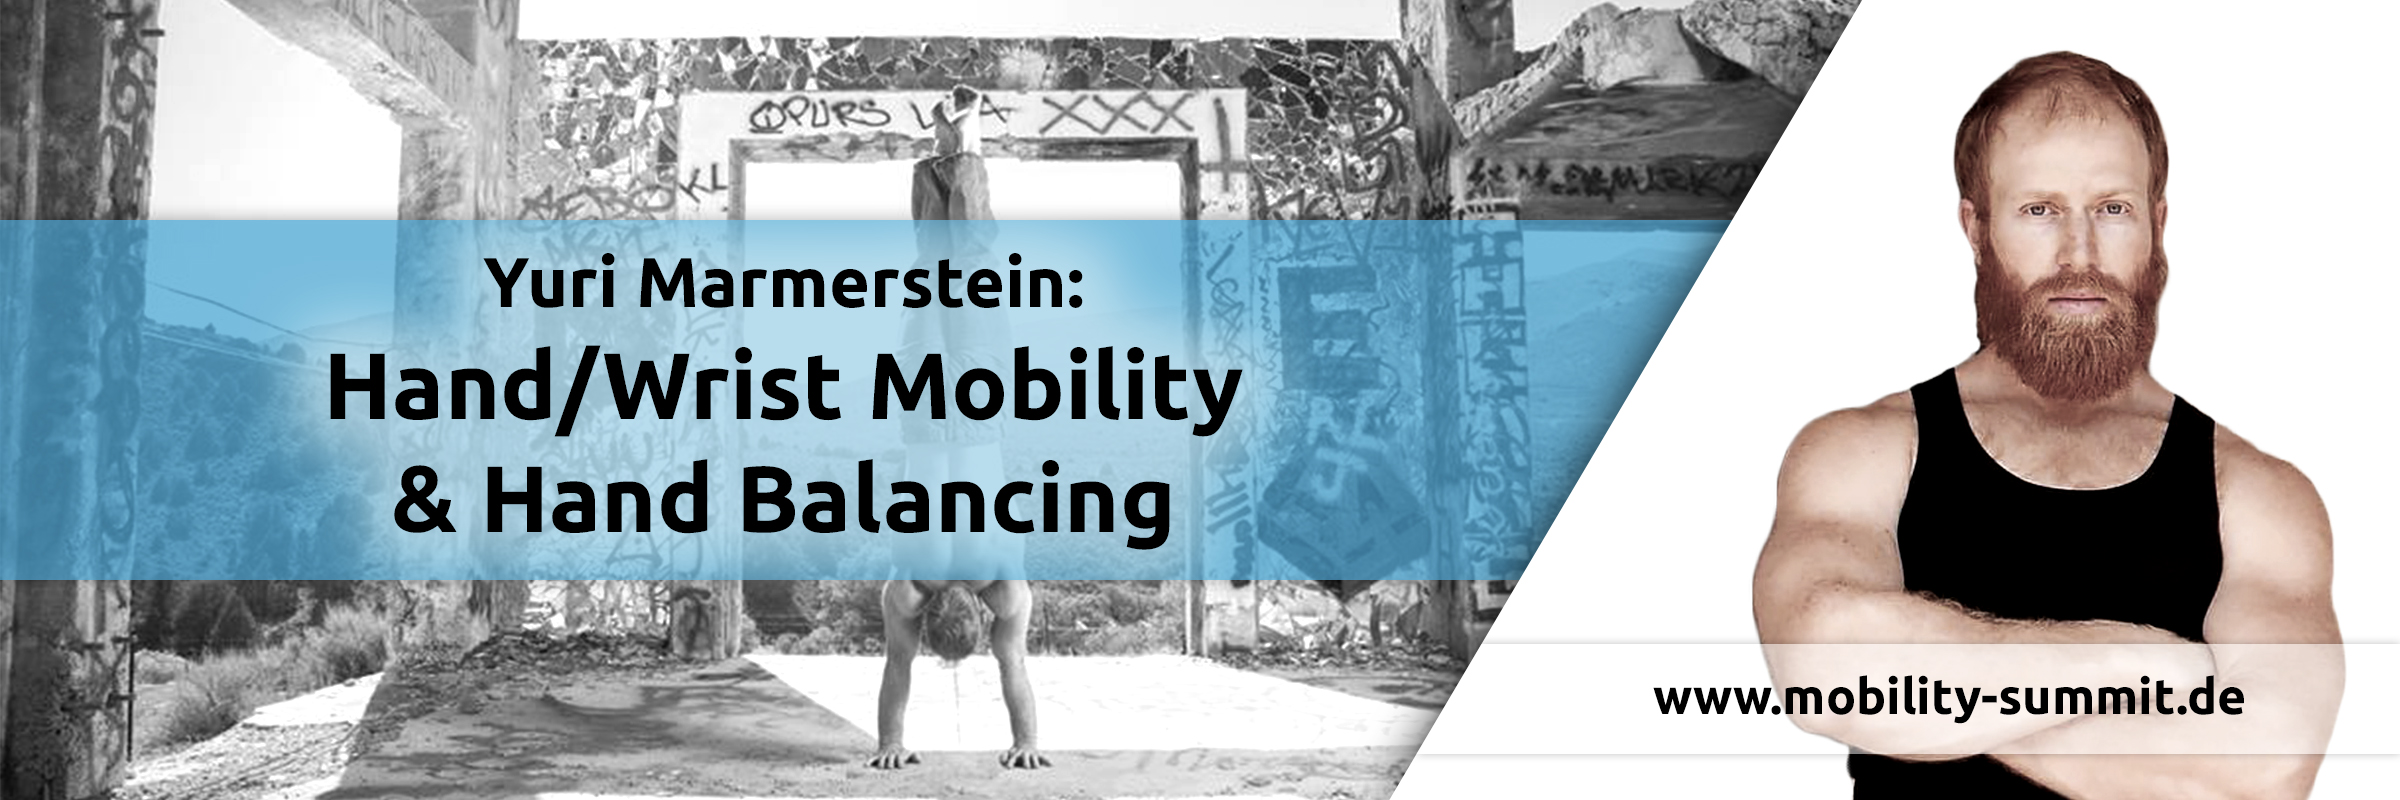 Yuri Marmerstein will be one of the speakers of the Mobility & Fascia Summit 2016